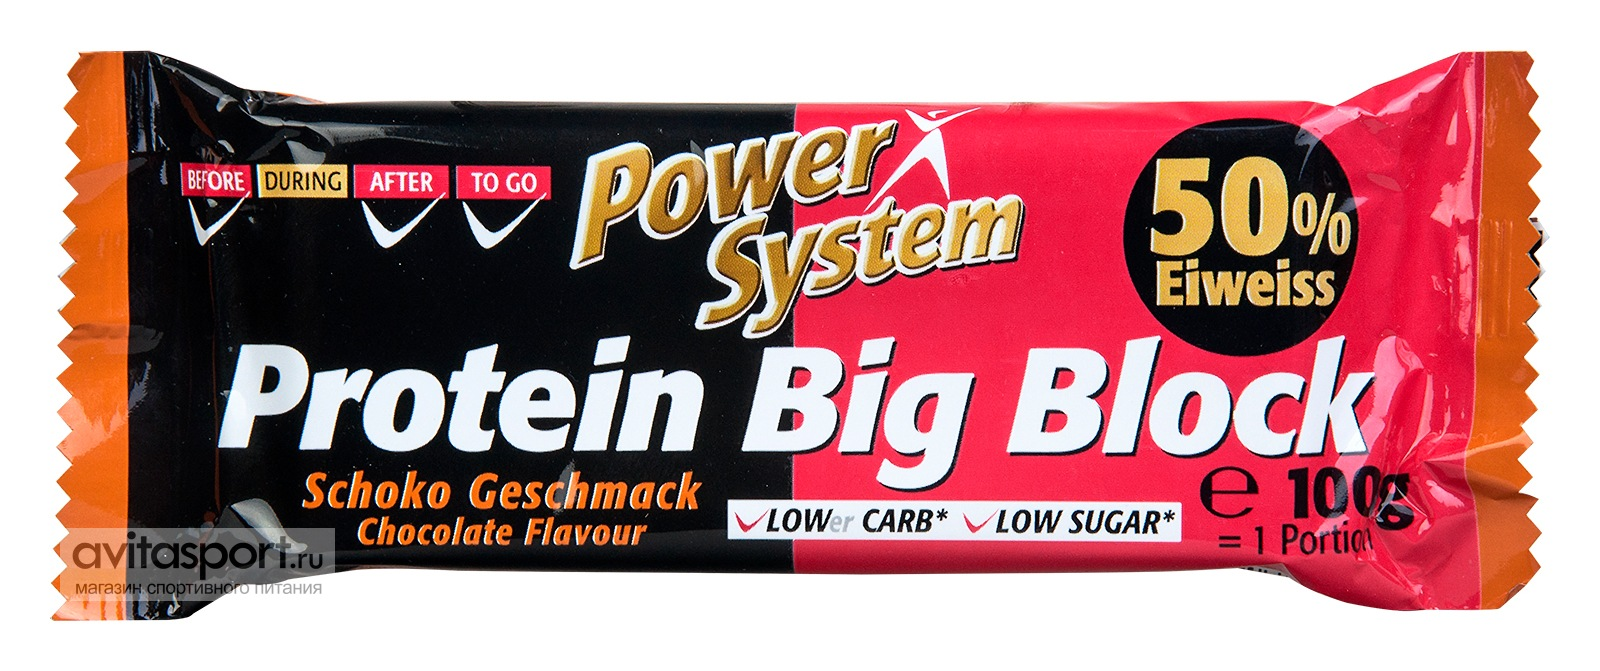 Power-System-Batonchik-Protein-Big-Block-100-g